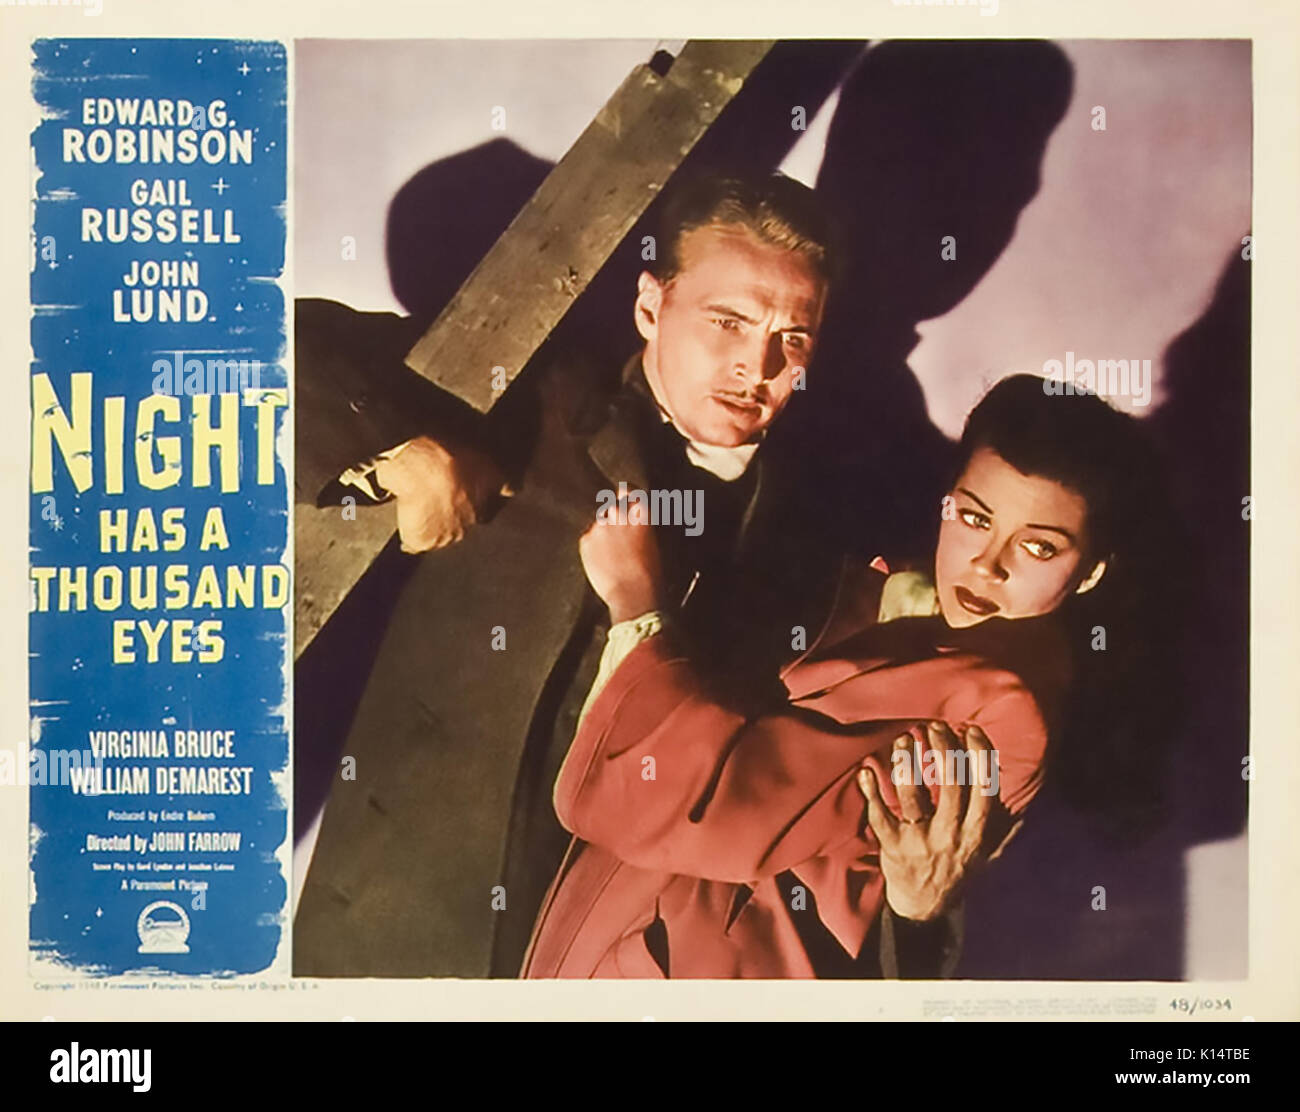 NIGHT HAS A THOUSAND EYES 1948 Paramount Pictures film noir with Gail Russell and  John Lund - Stock Image